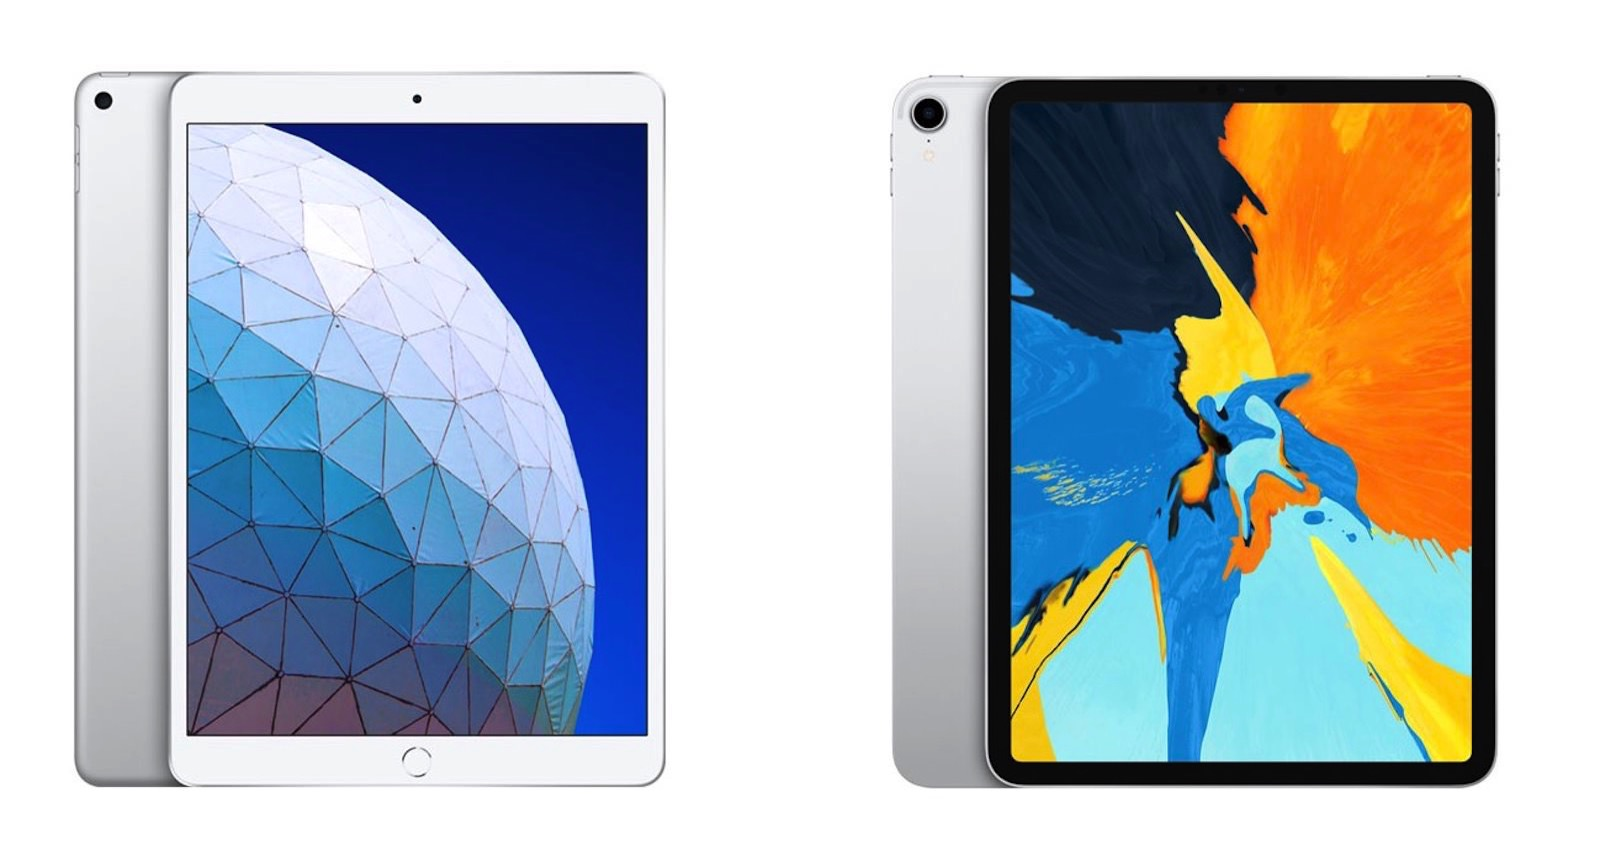 Ipad air and ipad pro comparison